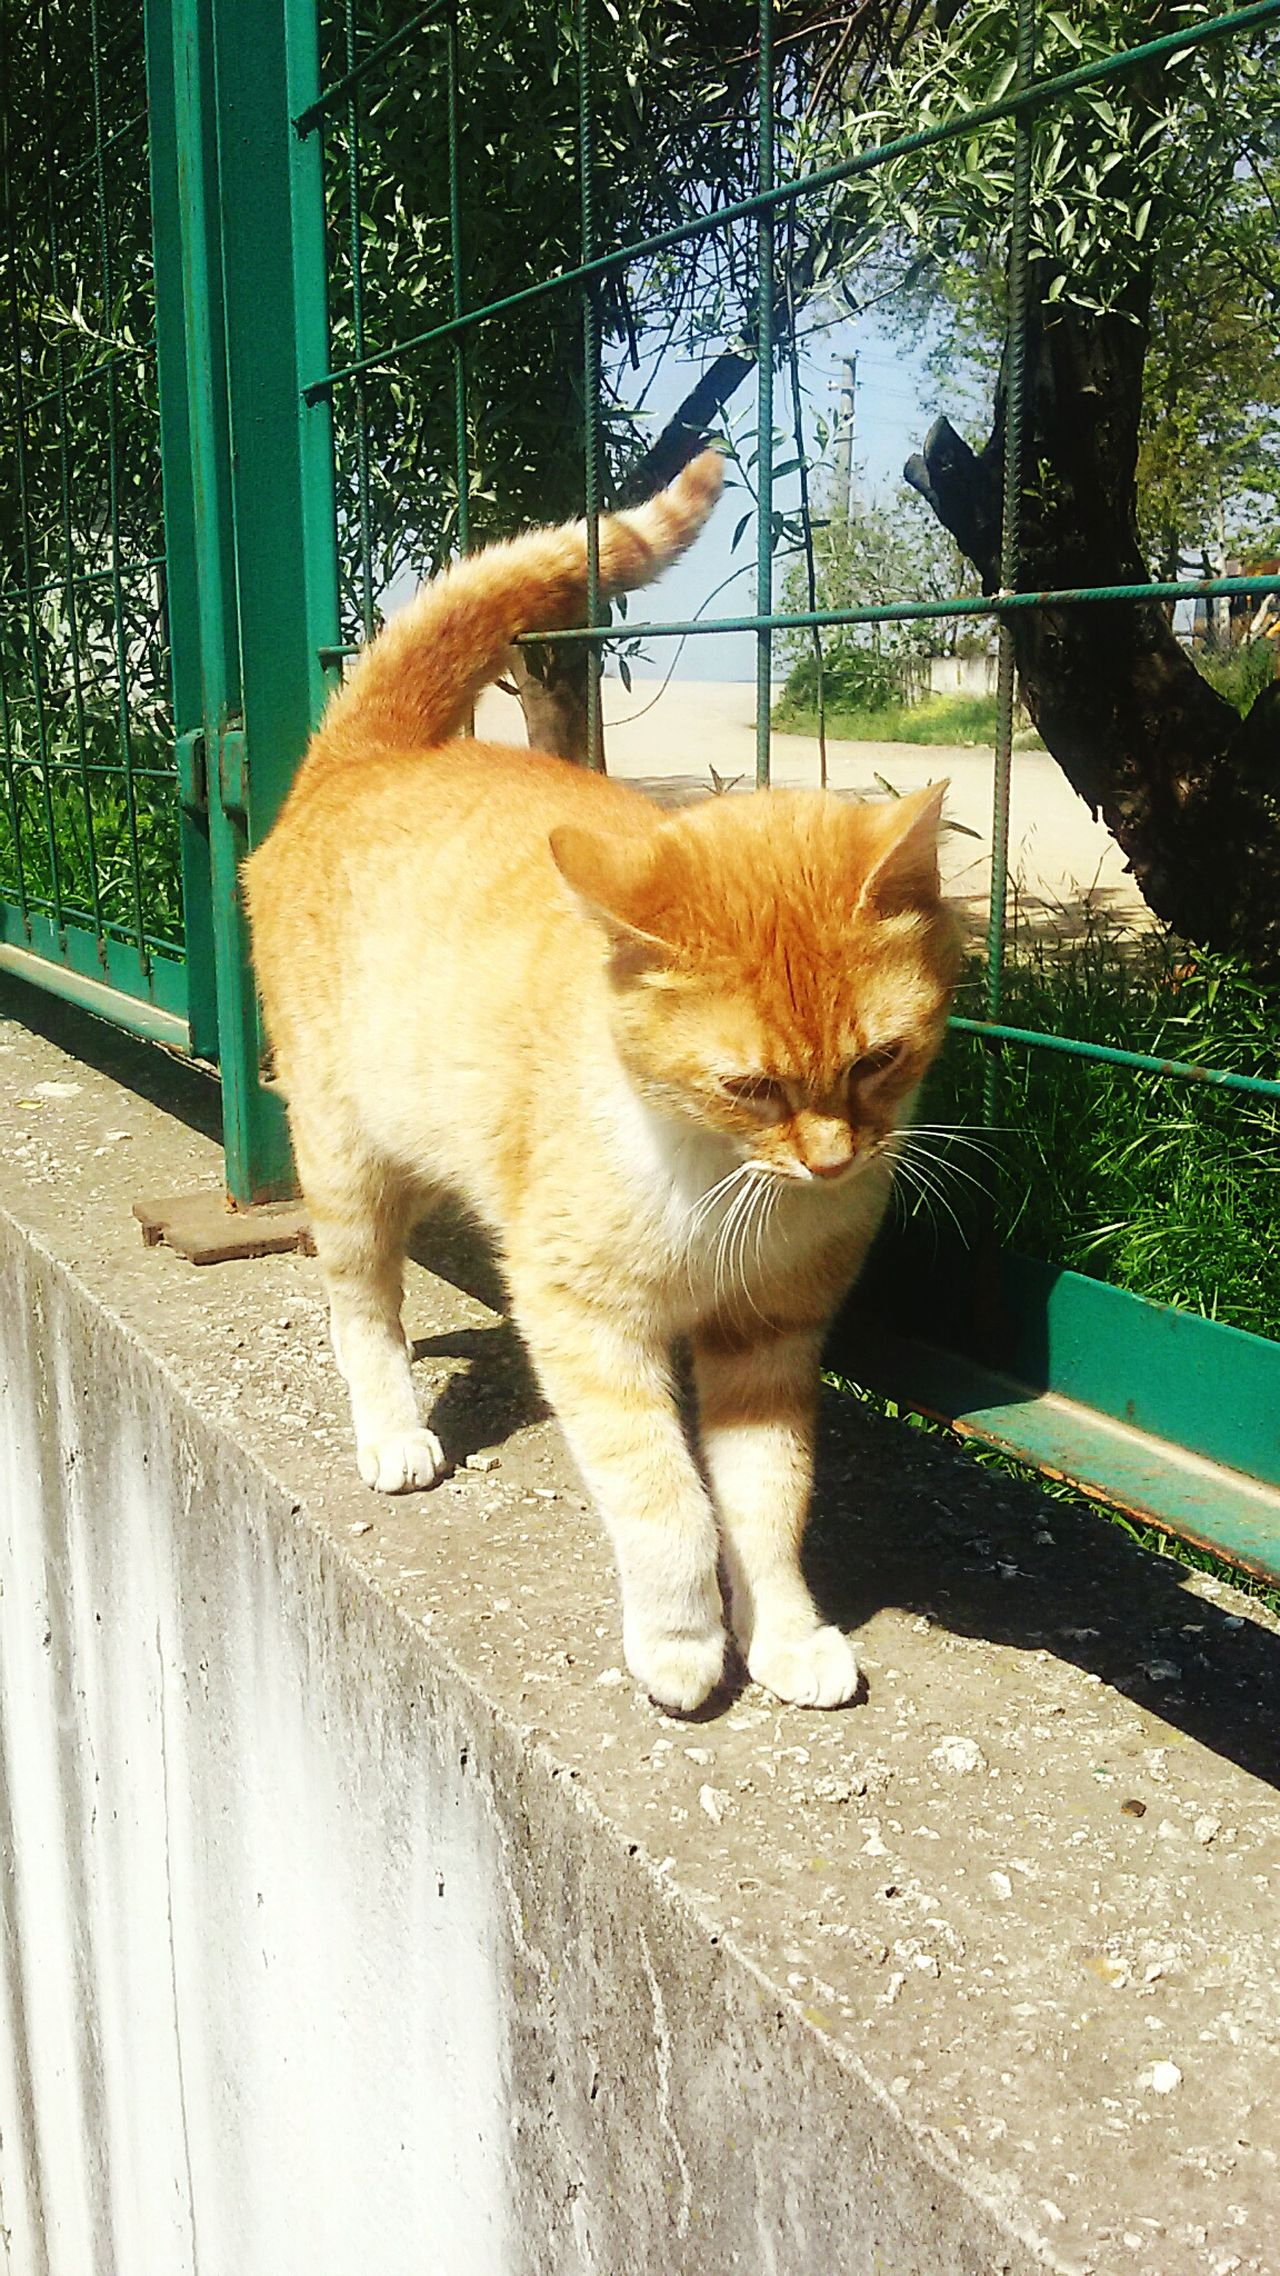 Pets Domestic Animals One Animal Domestic Cat Animal Themes No People Street Cats Cat Photography Turkey Çınarcık